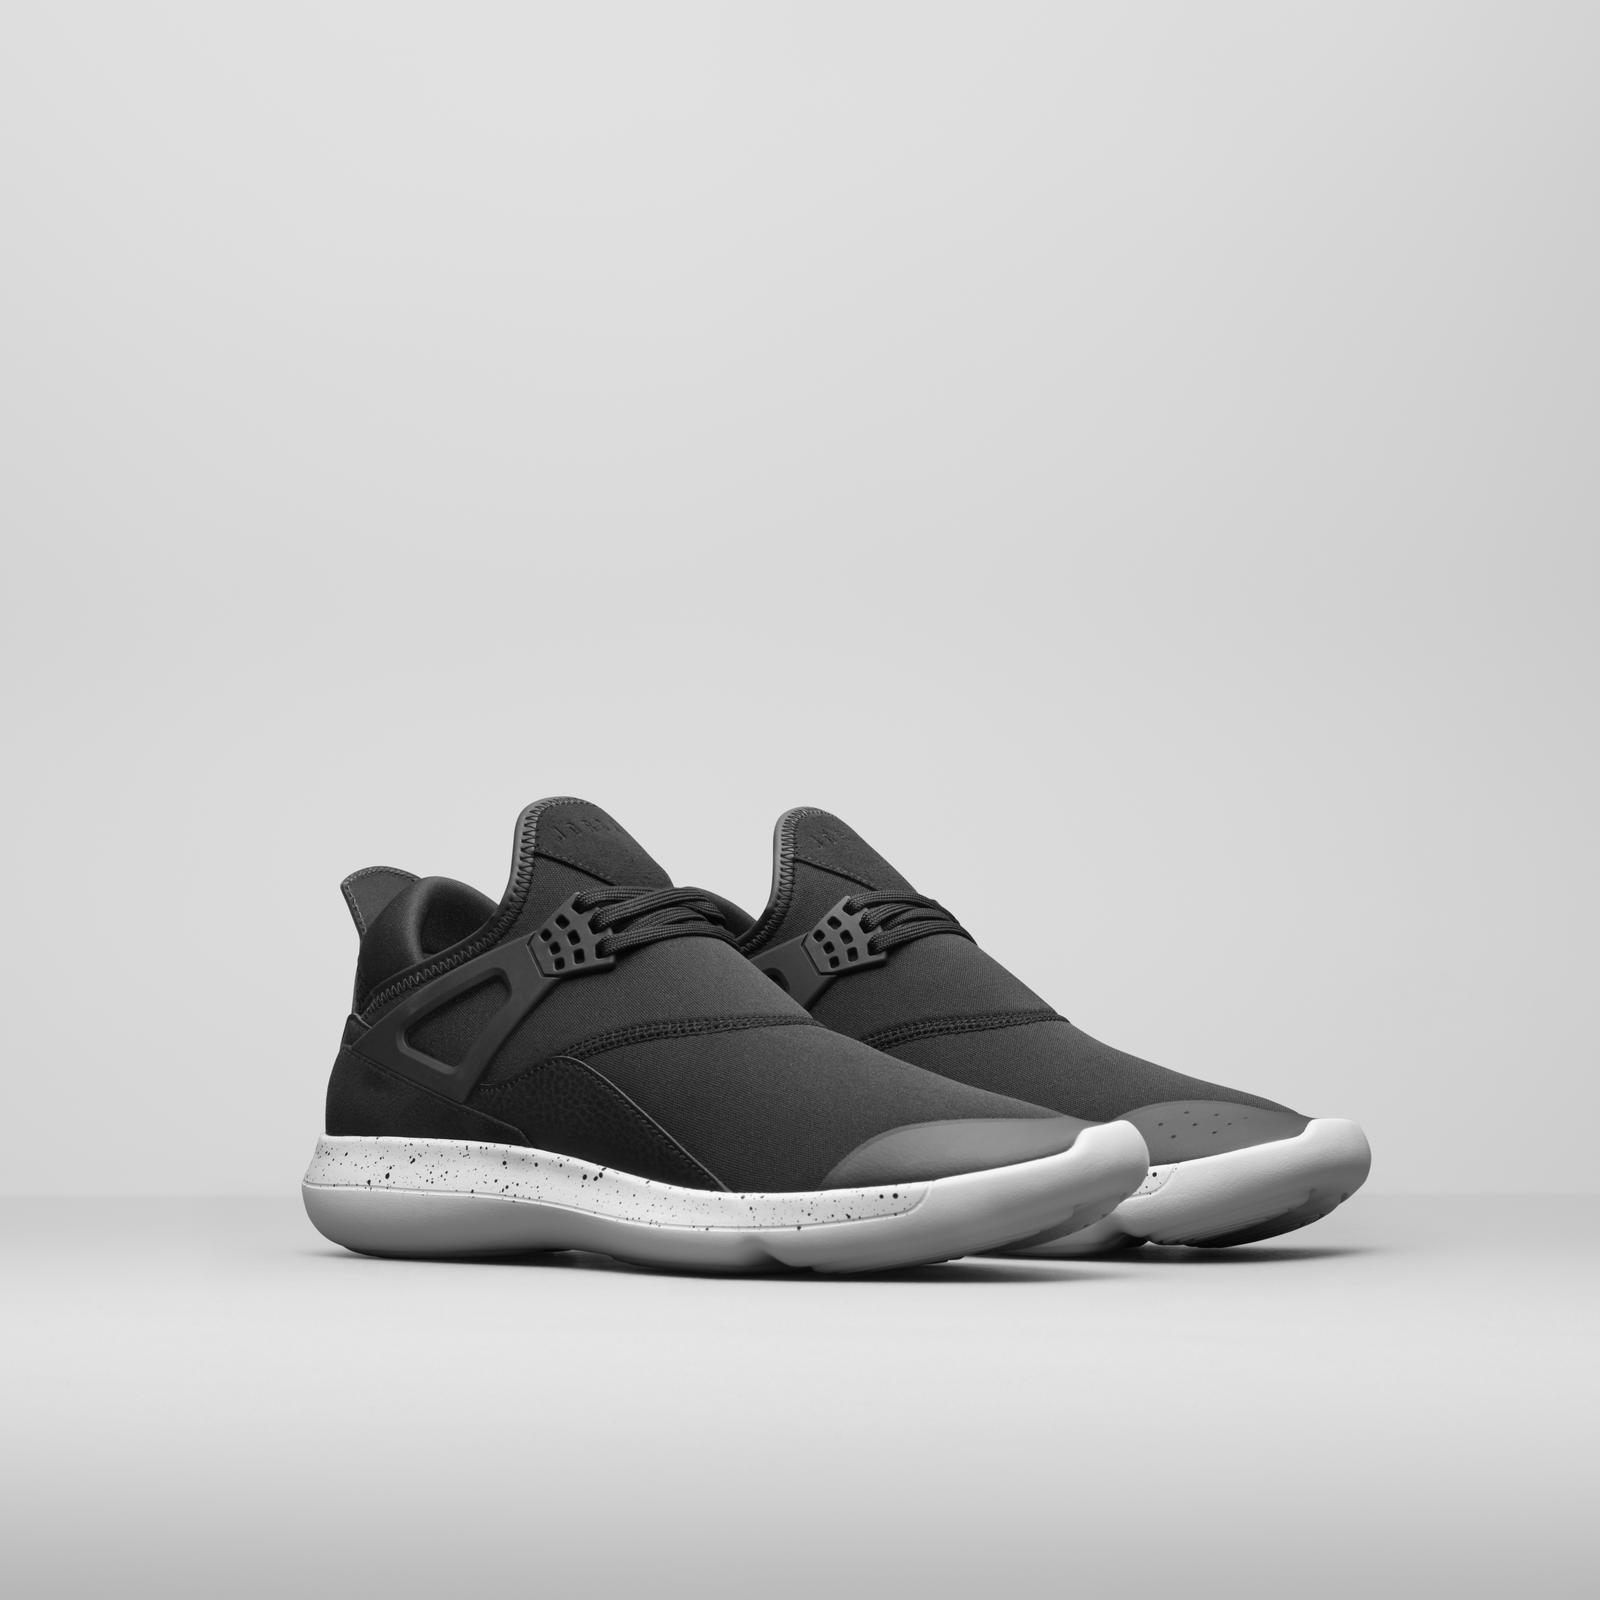 c0eb77a000cf09 Introducing the Jordan Fly  89 - Nike News